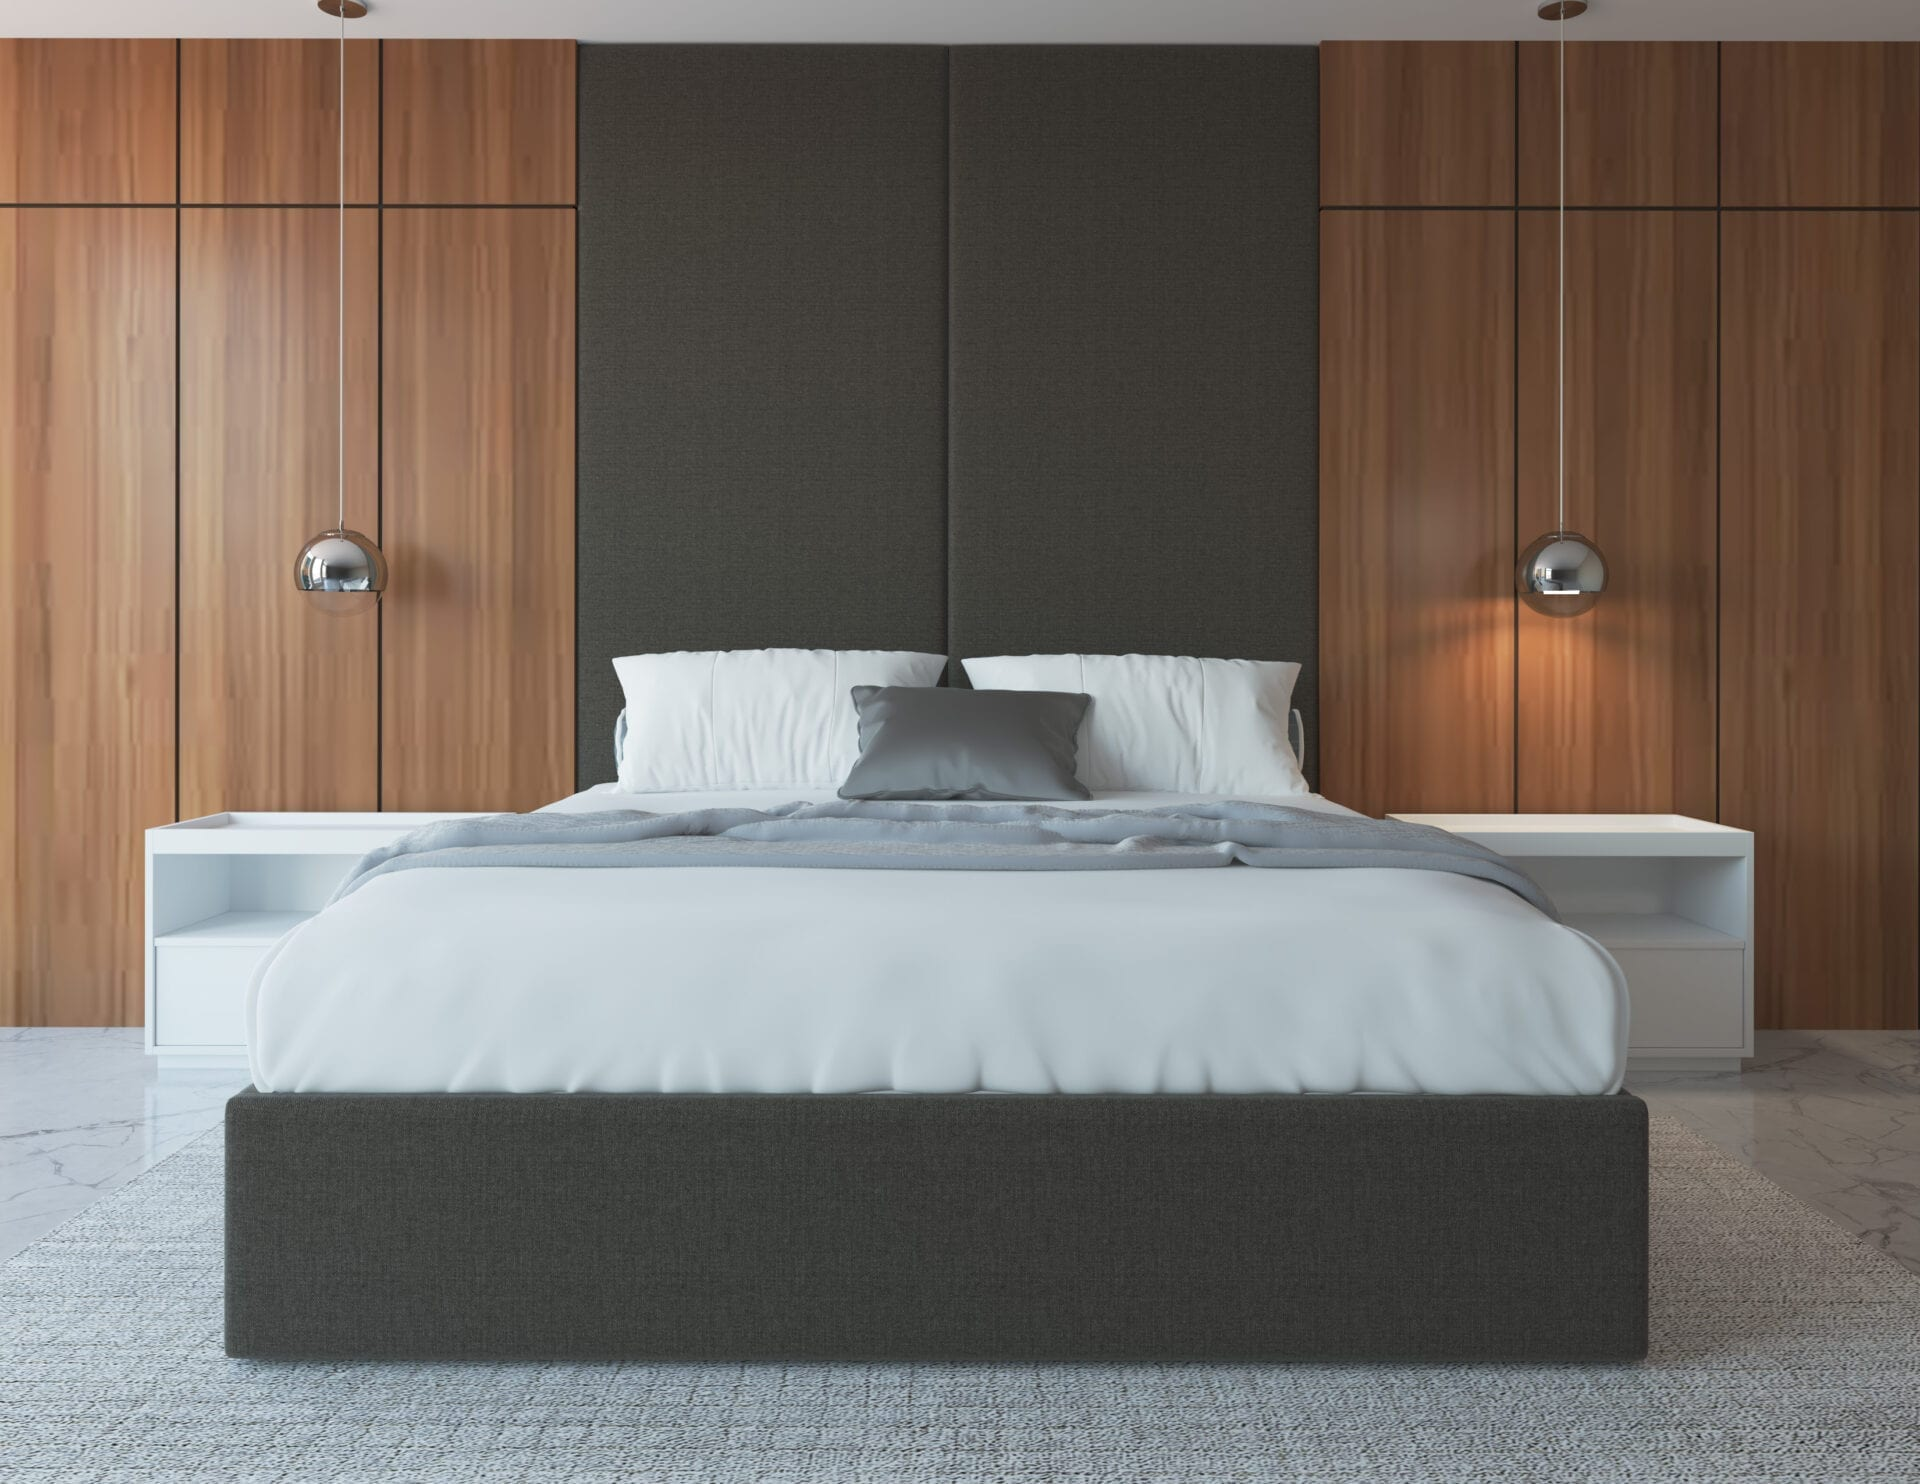 Altitude - Wall mounted upholstered, luxury headboard with custom upholstered wall panels - Custom luxury, upholstered beds with high end, bedroom textiles | Blend Home Furnishings